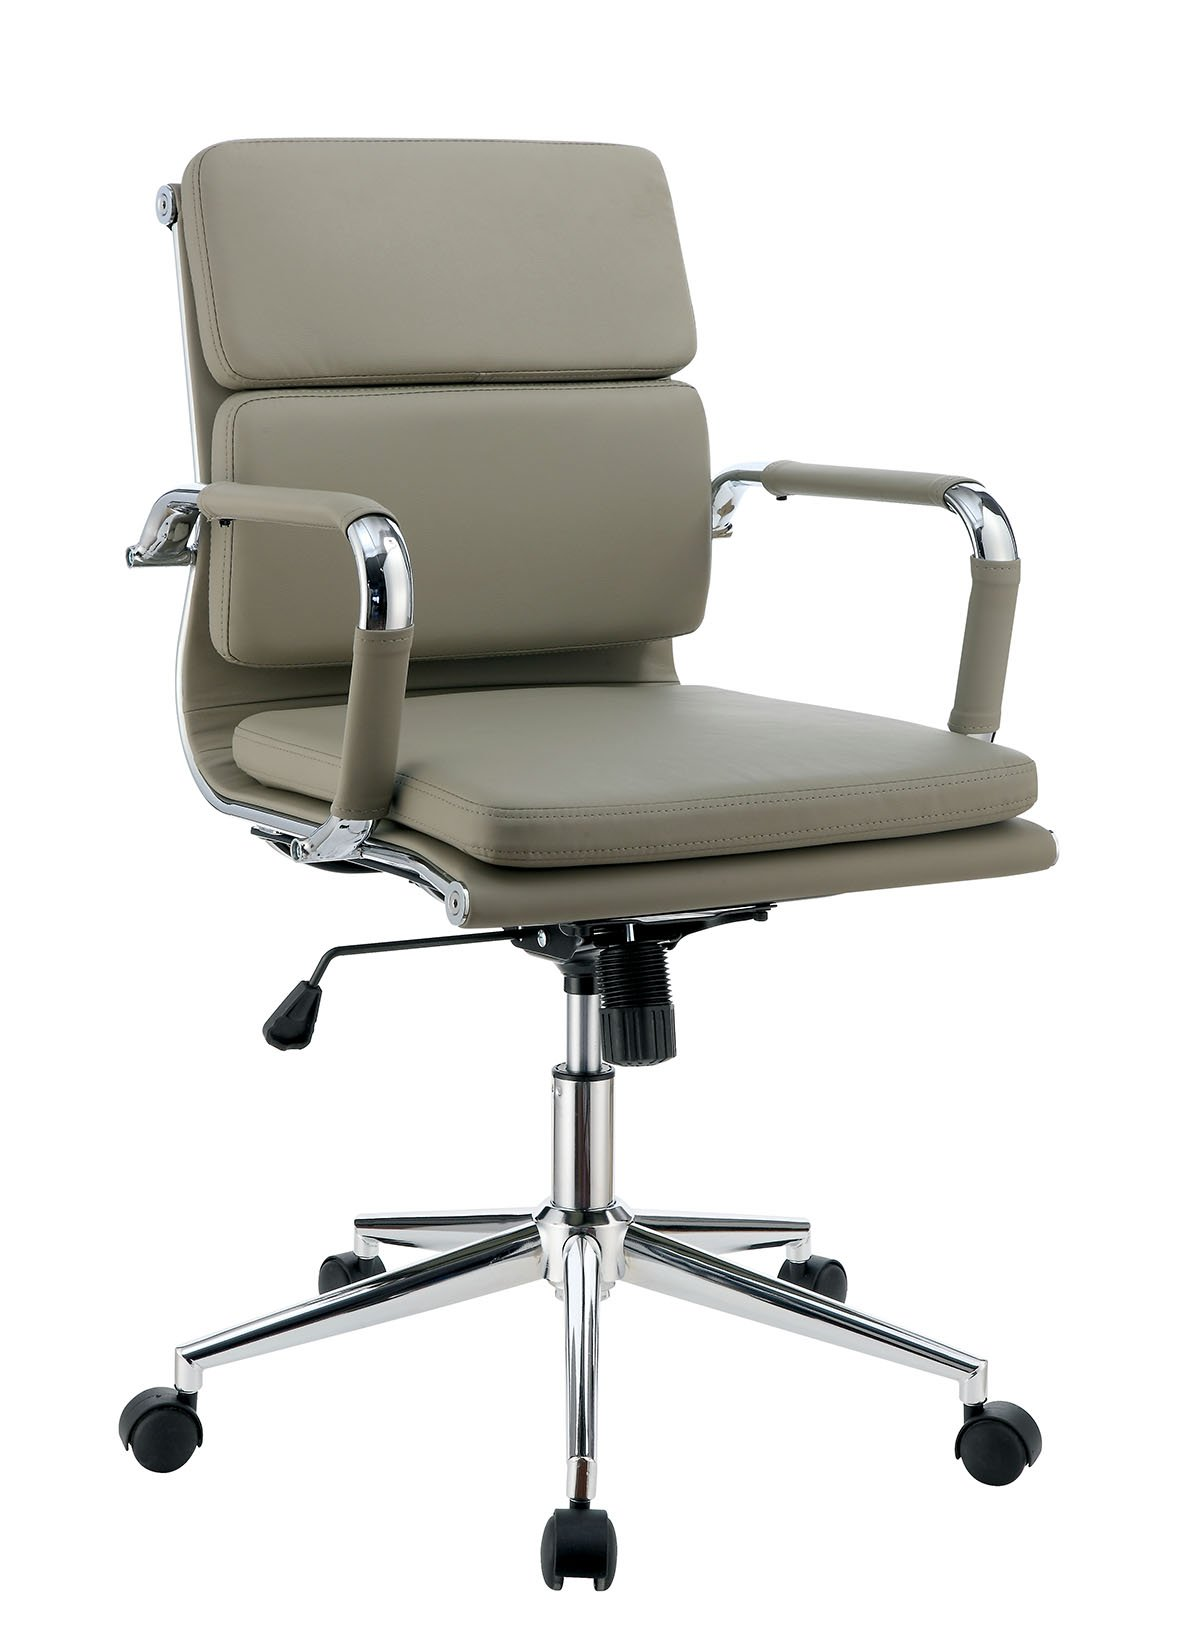 HOMES: Inside + Out IDF-FC636BR-S Azurite Low Back Leatherette Office Chair, Small, Brown